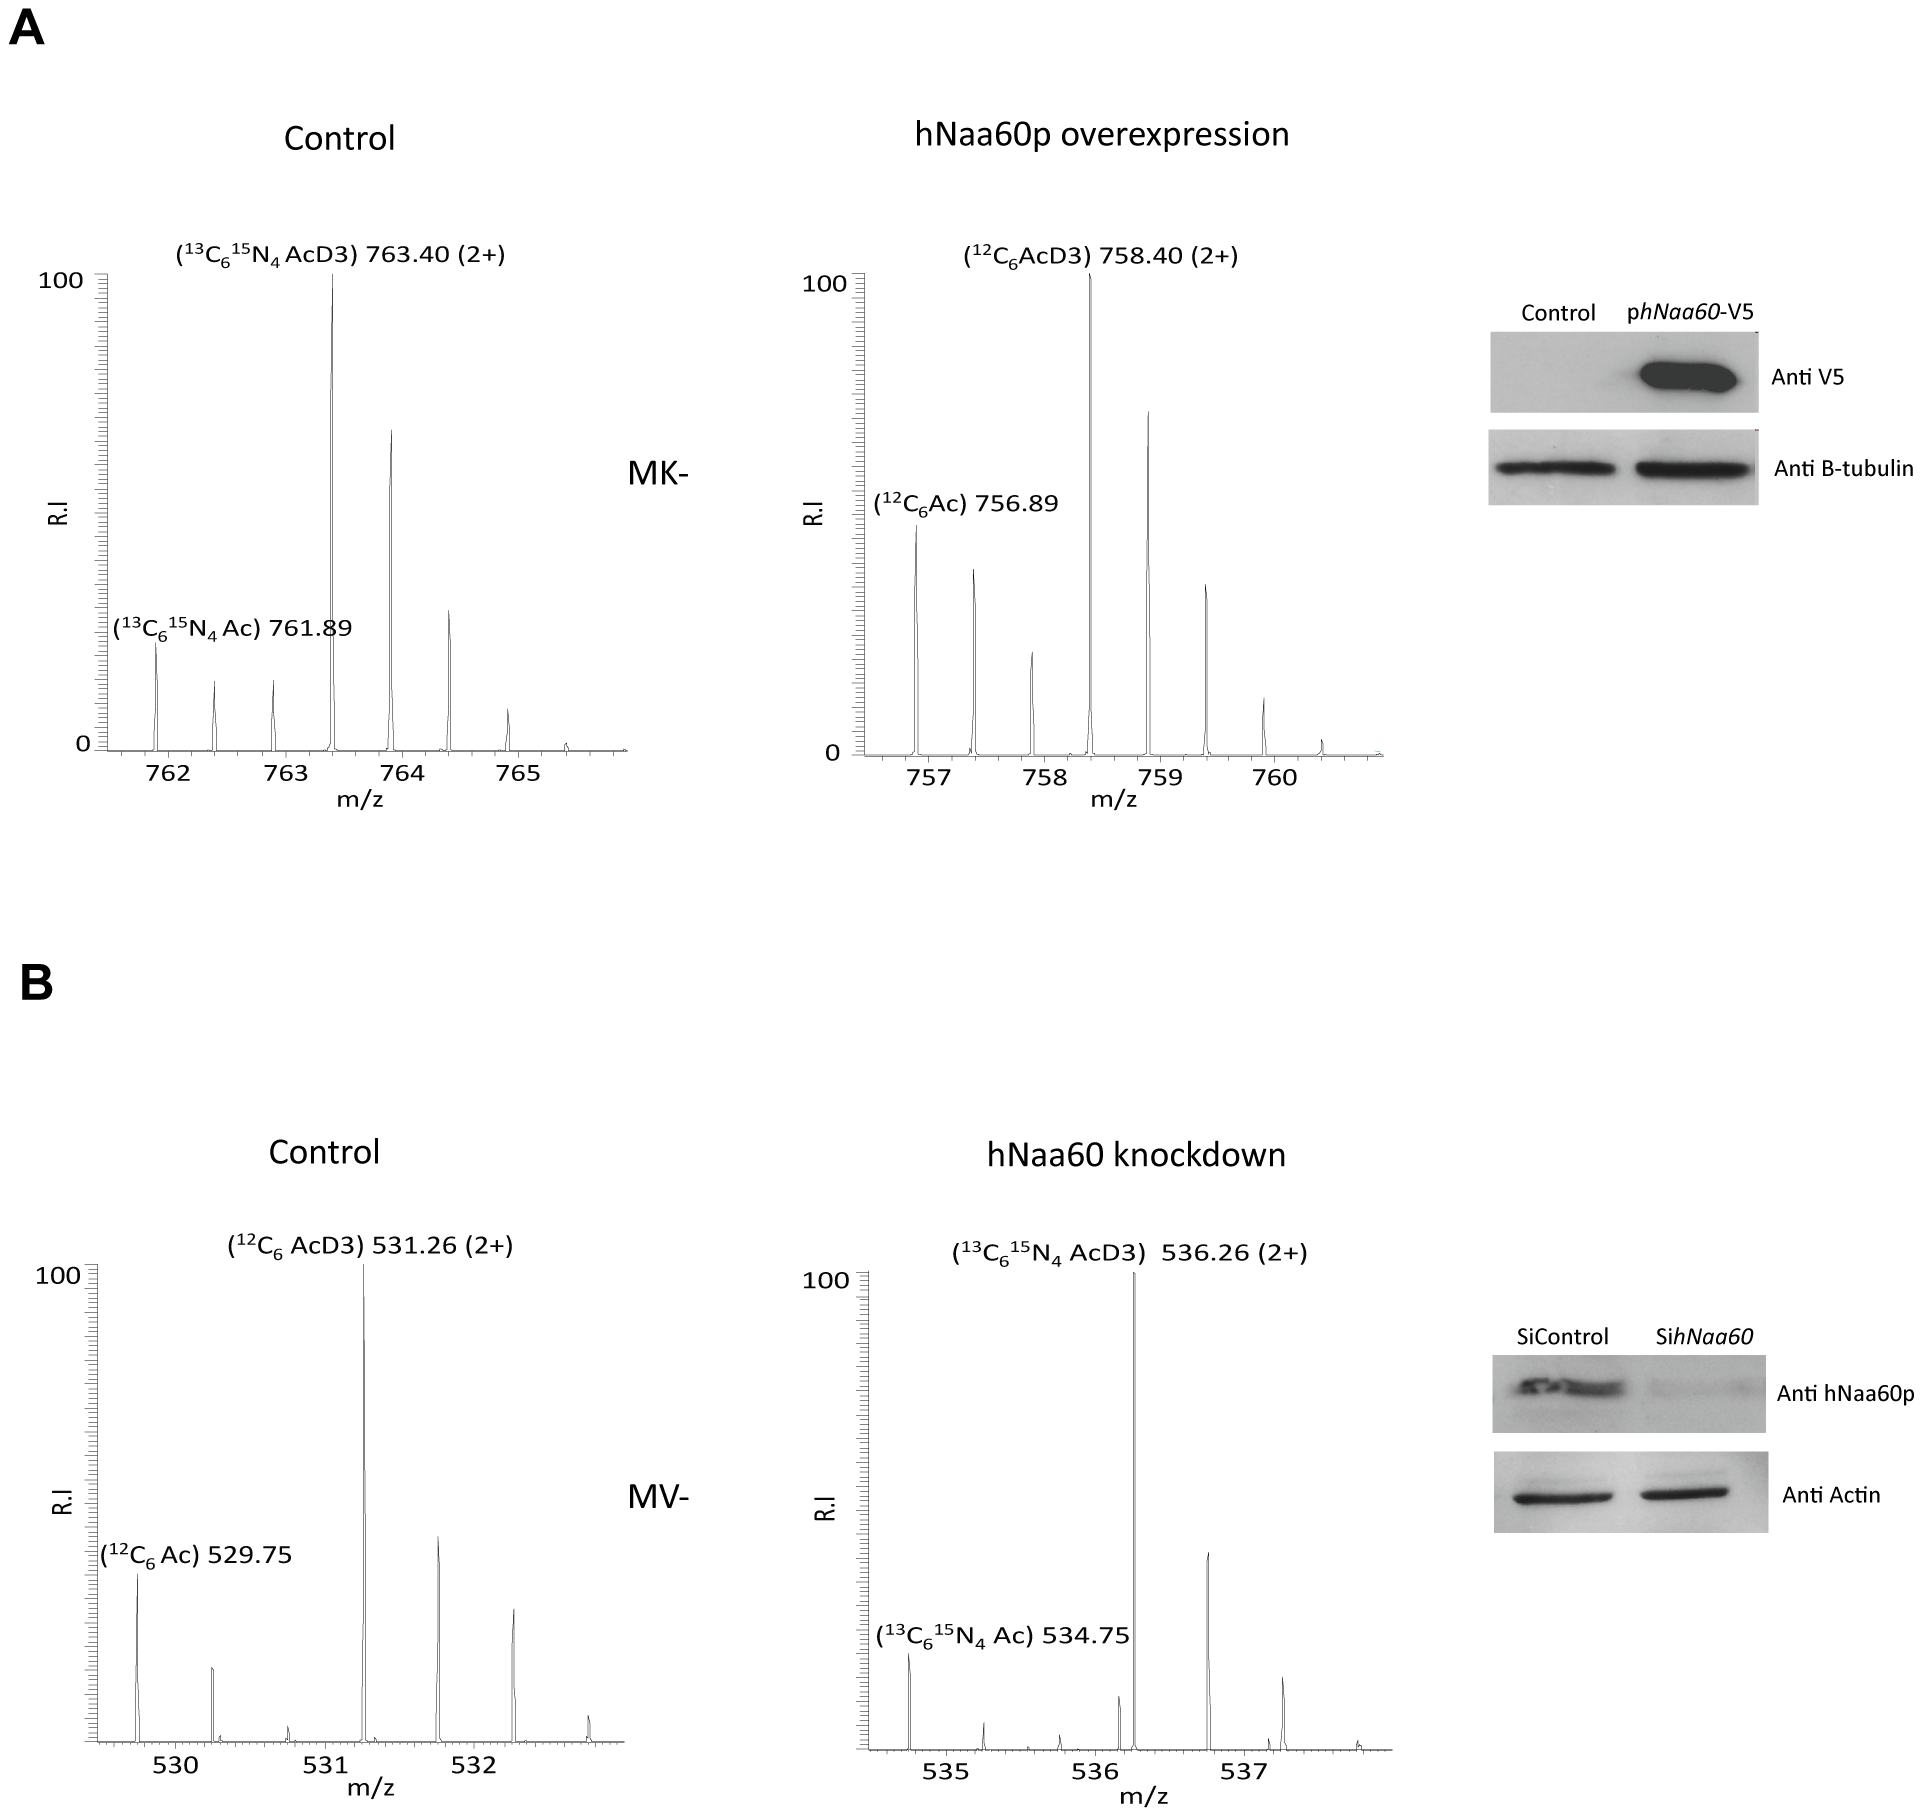 Knockdown and overexpression of hNaa60p affects N-terminal acetylation in HeLa cells.